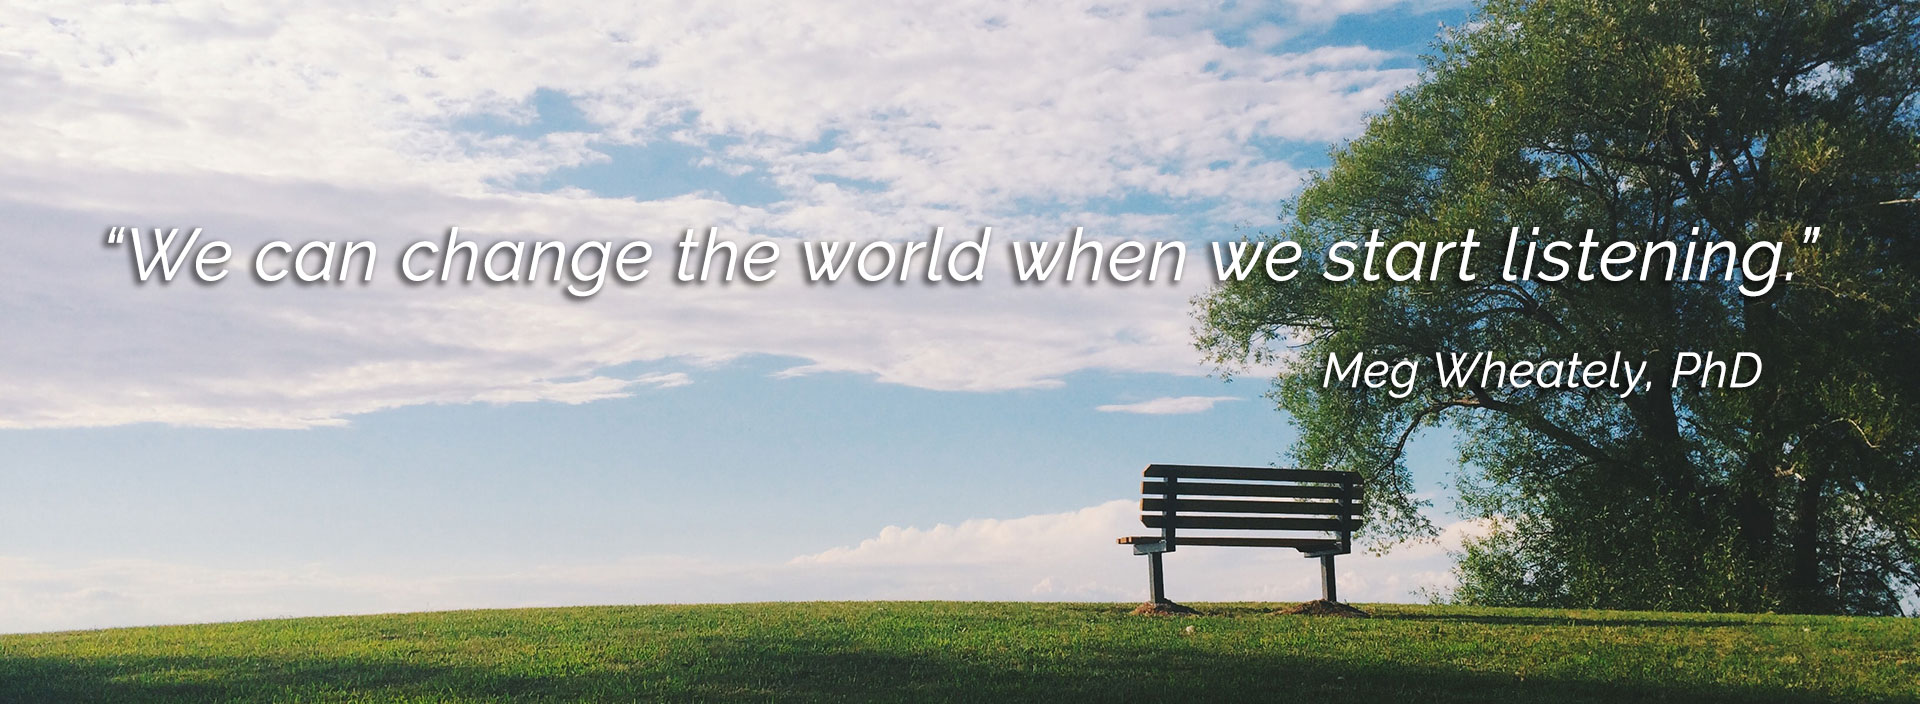 We can change the world when we start listening. Quote by Meg Wheately, PhD